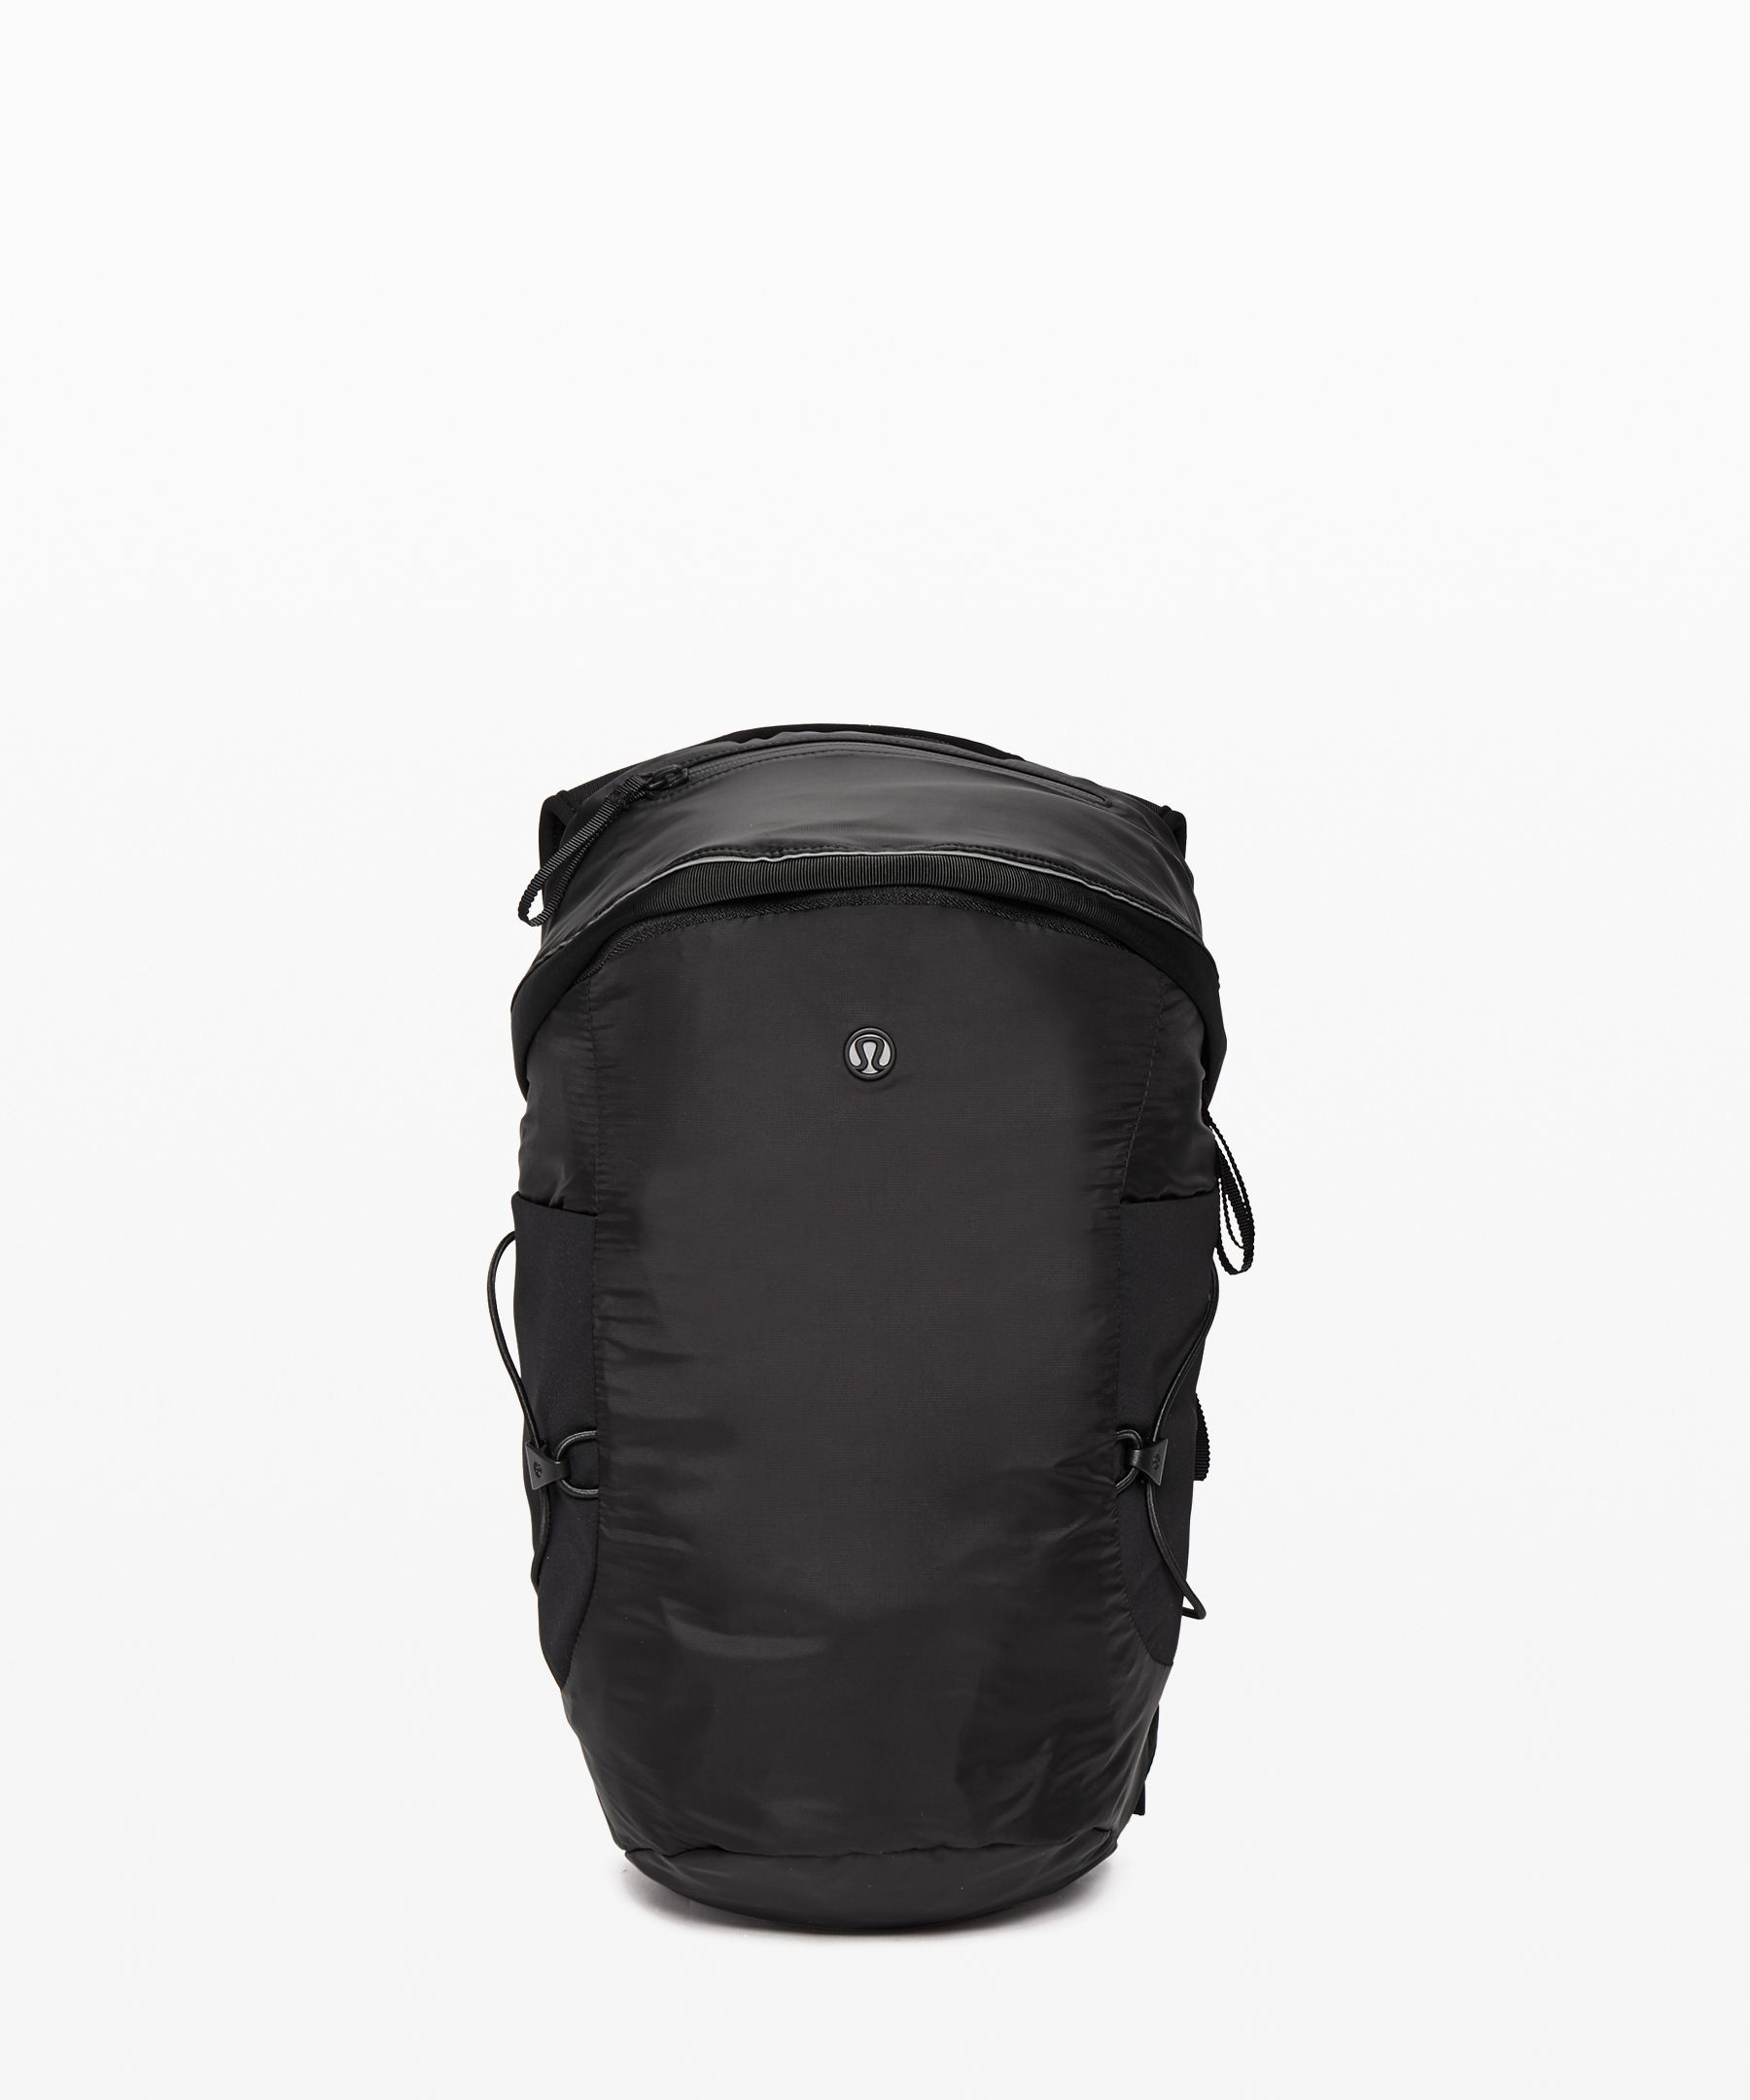 f394e0d8e5433 Run All Day Backpack II  Women s Fit 13L Online Only